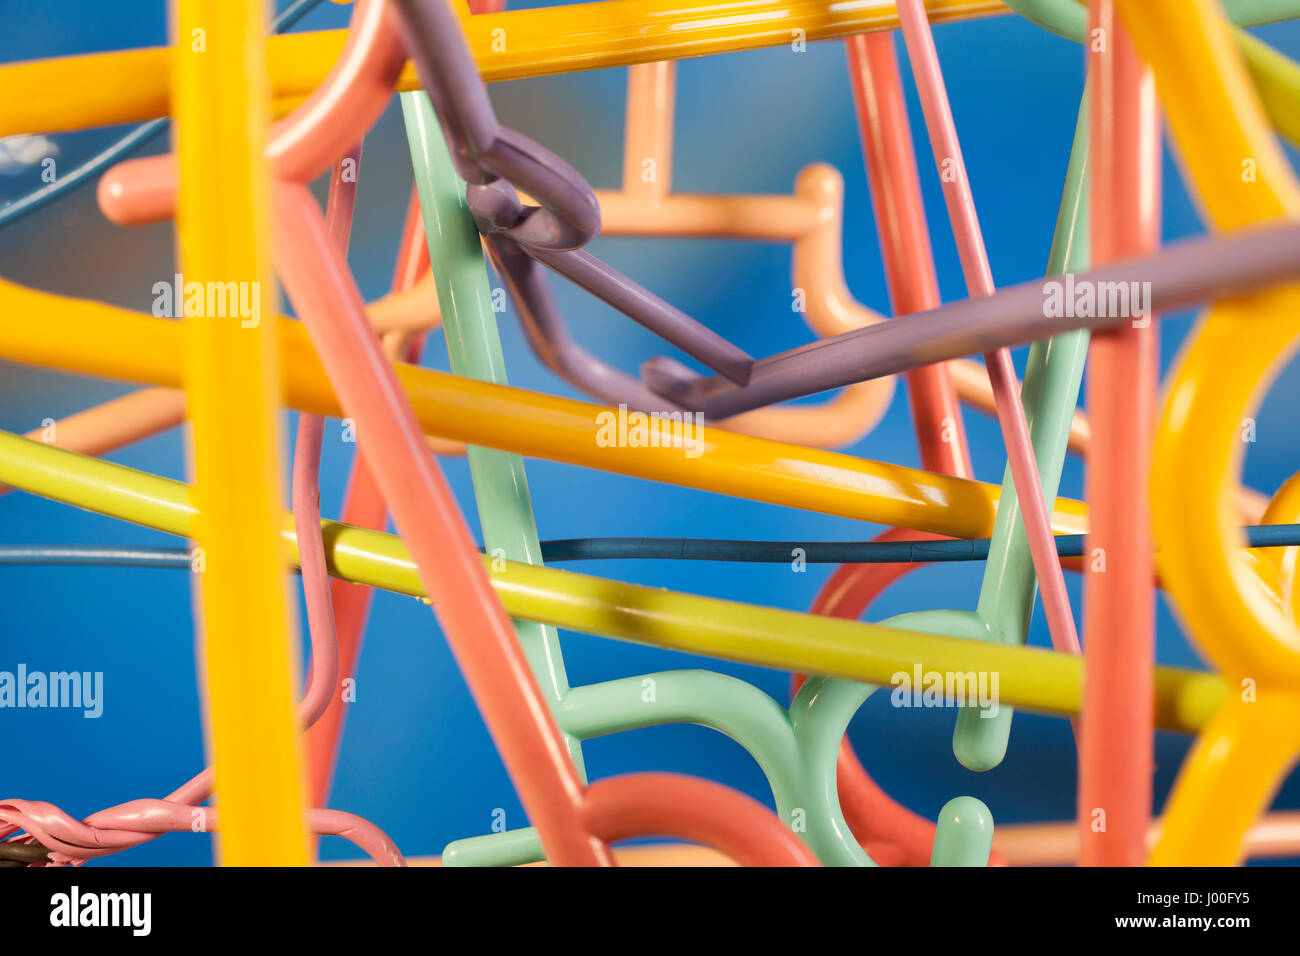 Macro detail of a jumble of colorful clothes hangers - Stock Image